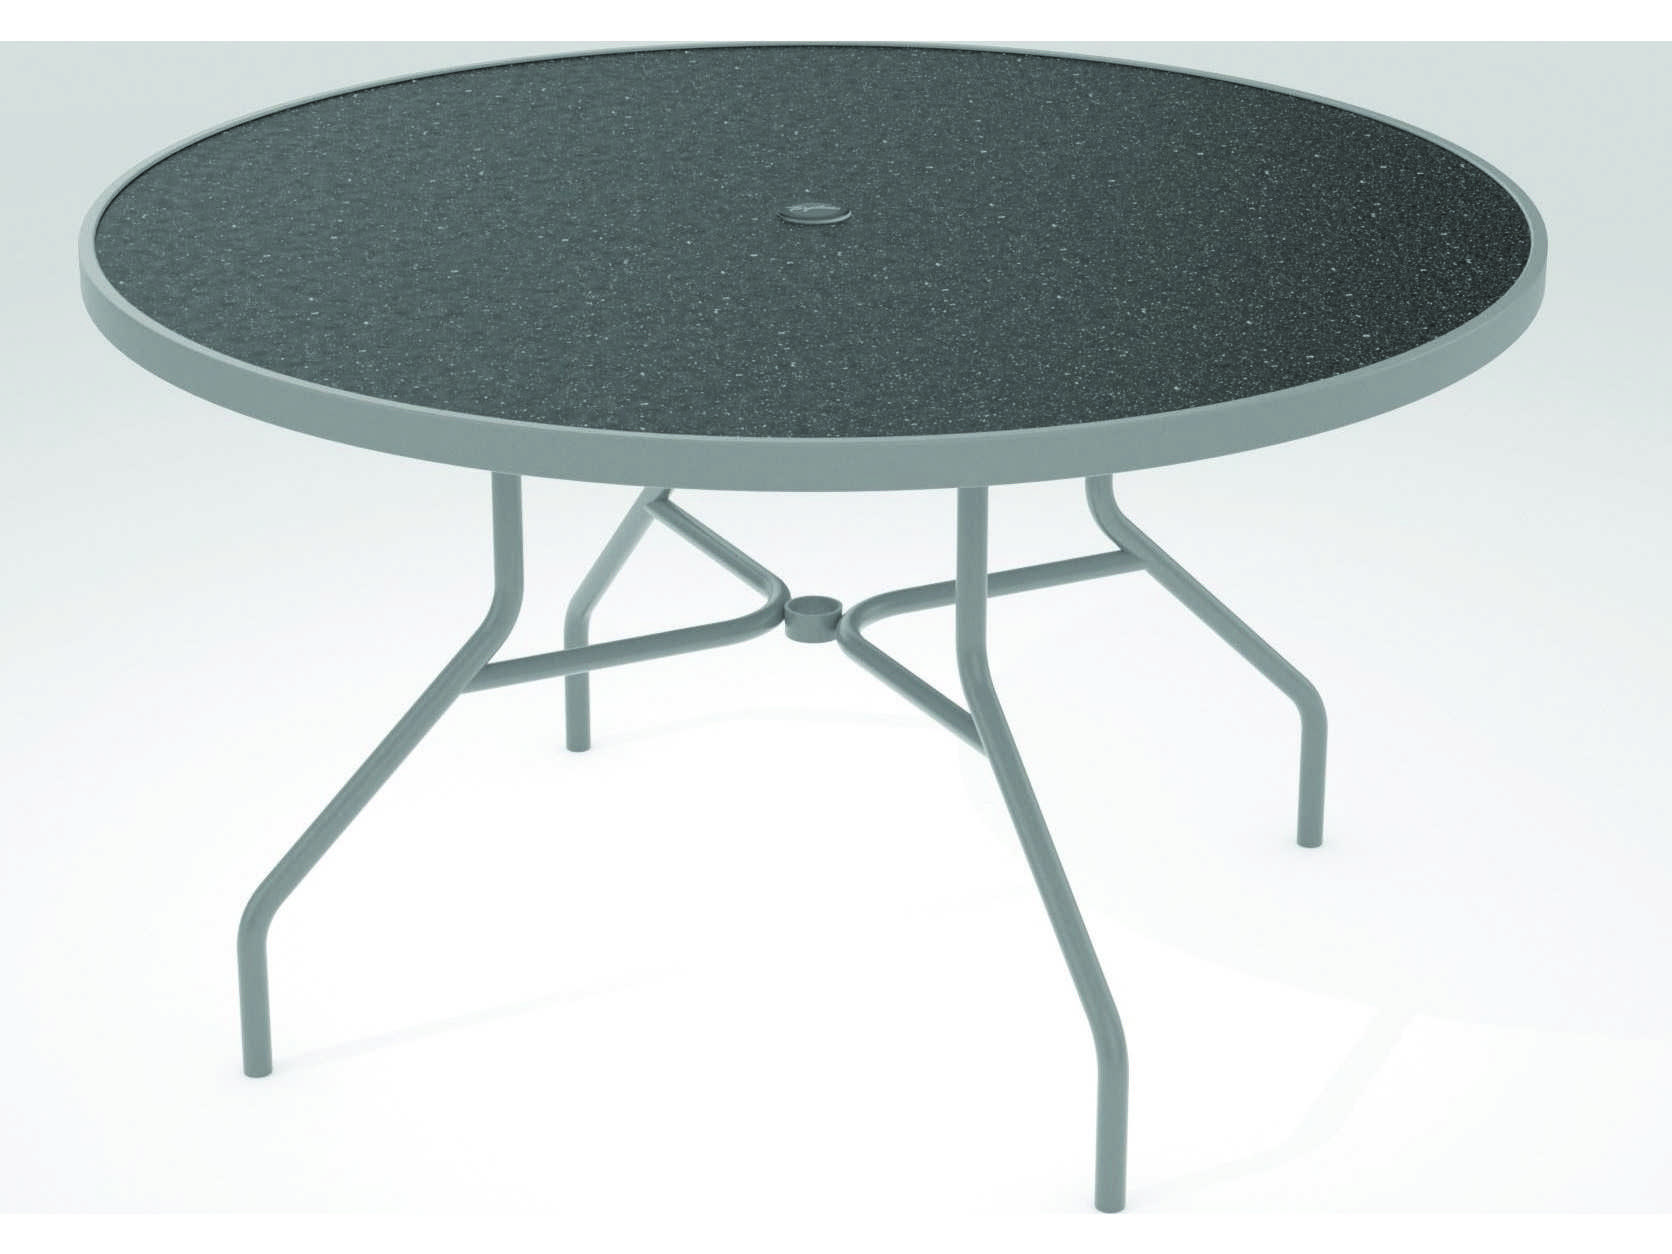 Tropitone Hpl Raduno Aluminum 48 Round Dining Umbrella Table Tp647nhu